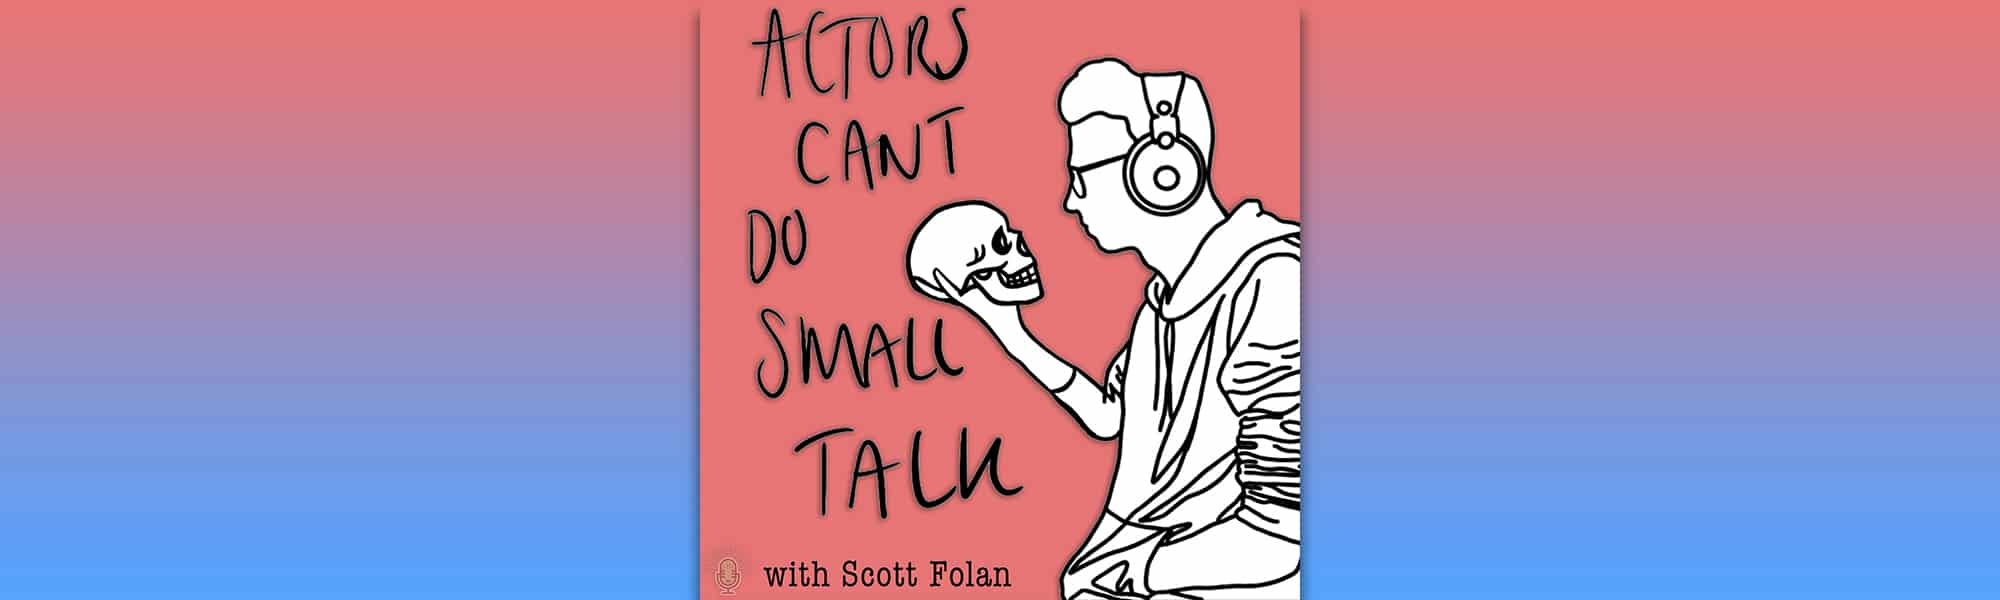 Actors Can't Do Small Talk - banner